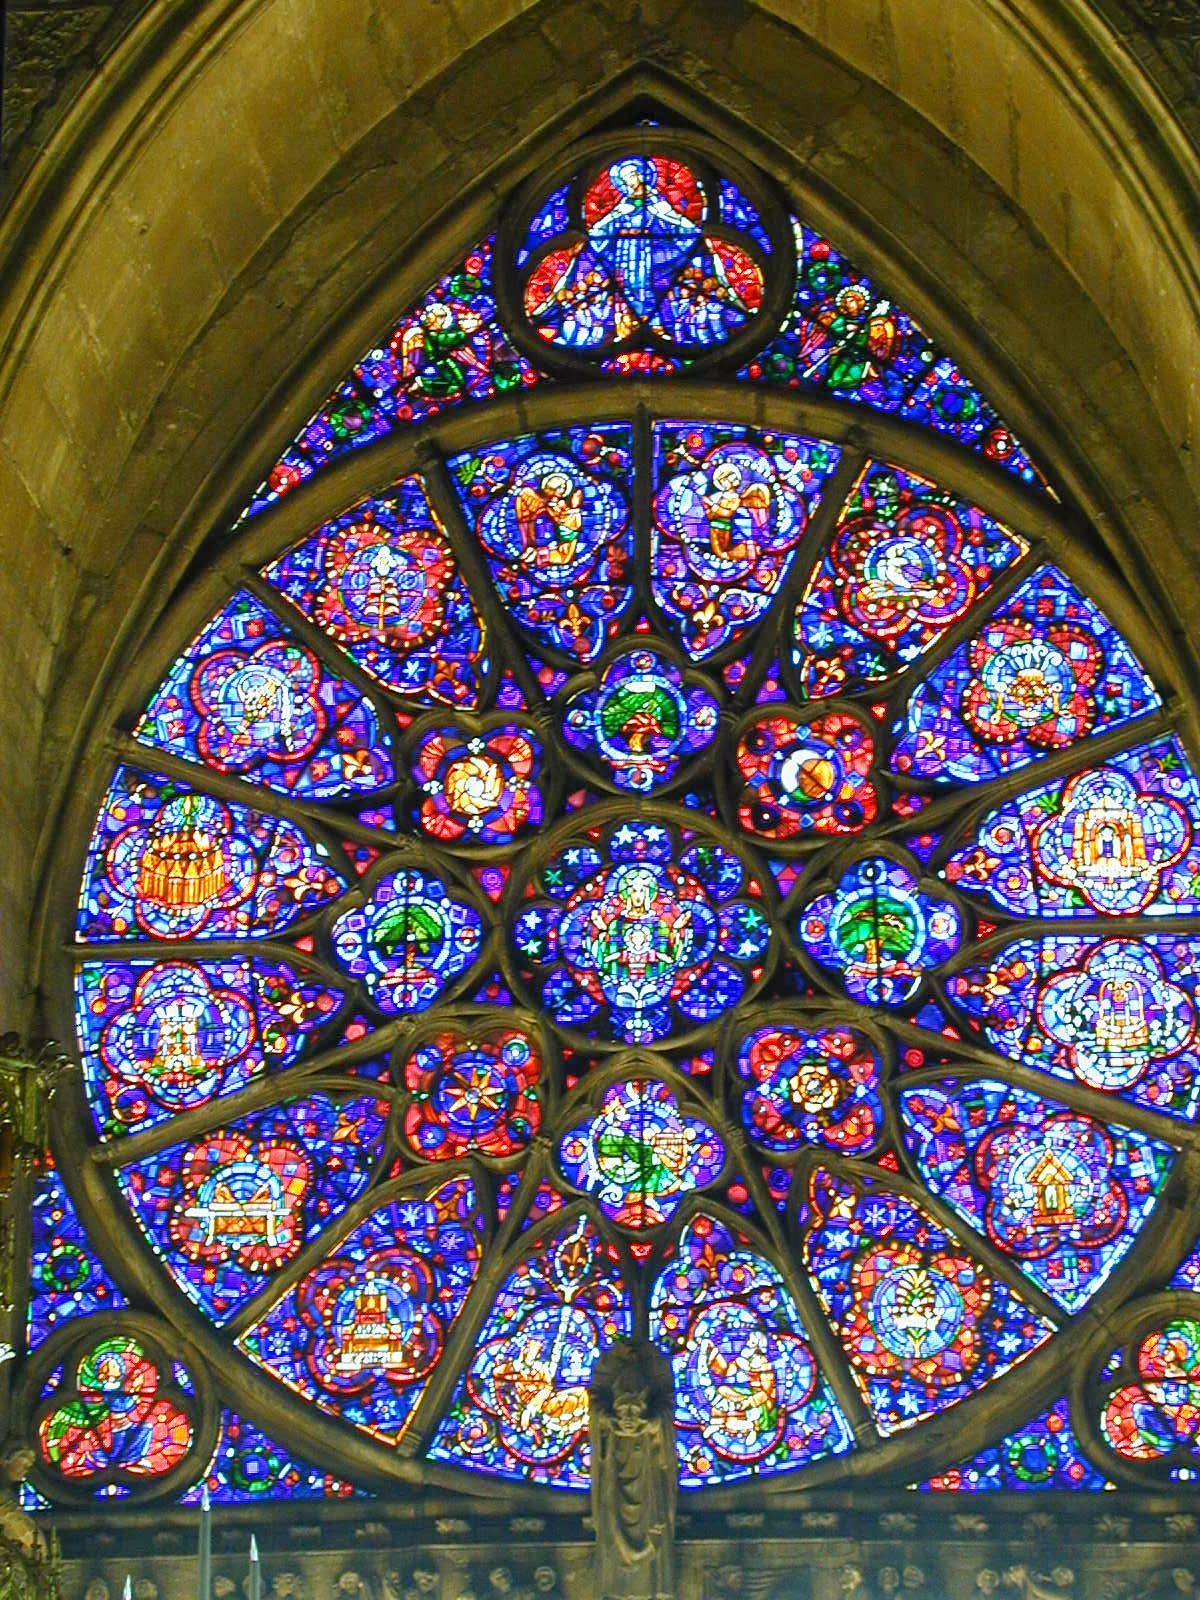 OLarge Stained Glass Windows